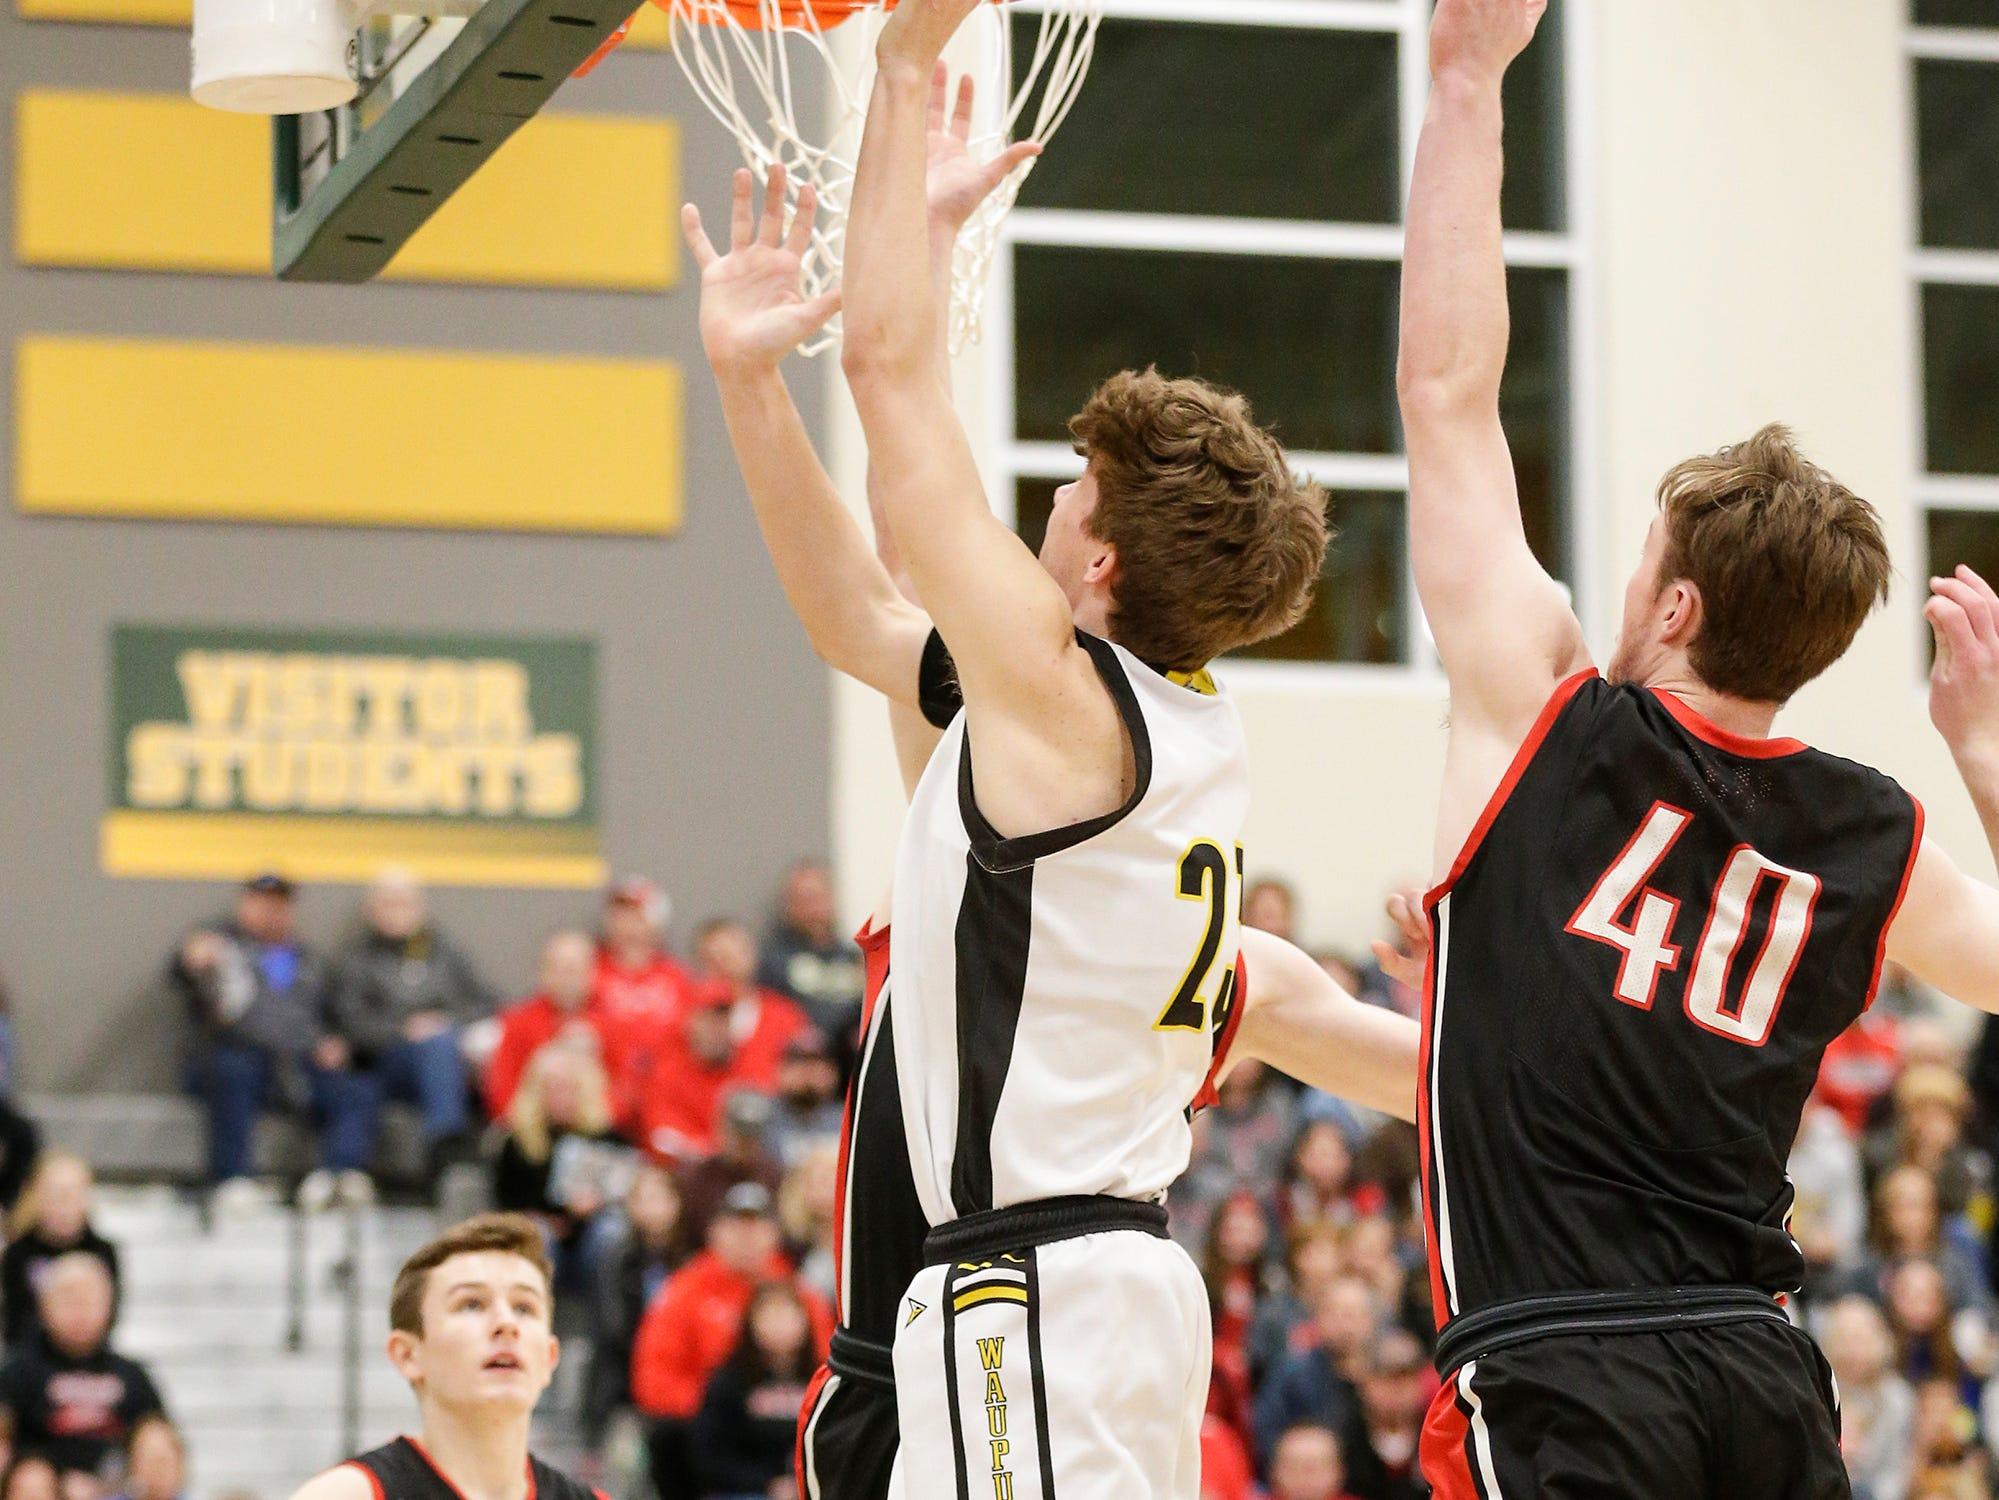 Waupun High School boys basketball's Trevor VandeZande goes up foa a basket against Columbus High School during their WIAA division 3 sectional semi-final game Thursday, March 7, 2019 in Beaver Dam, Wis. Waupun won the game 79-36. Doug Raflik/USA TODAY NETWORK-Wisconsin